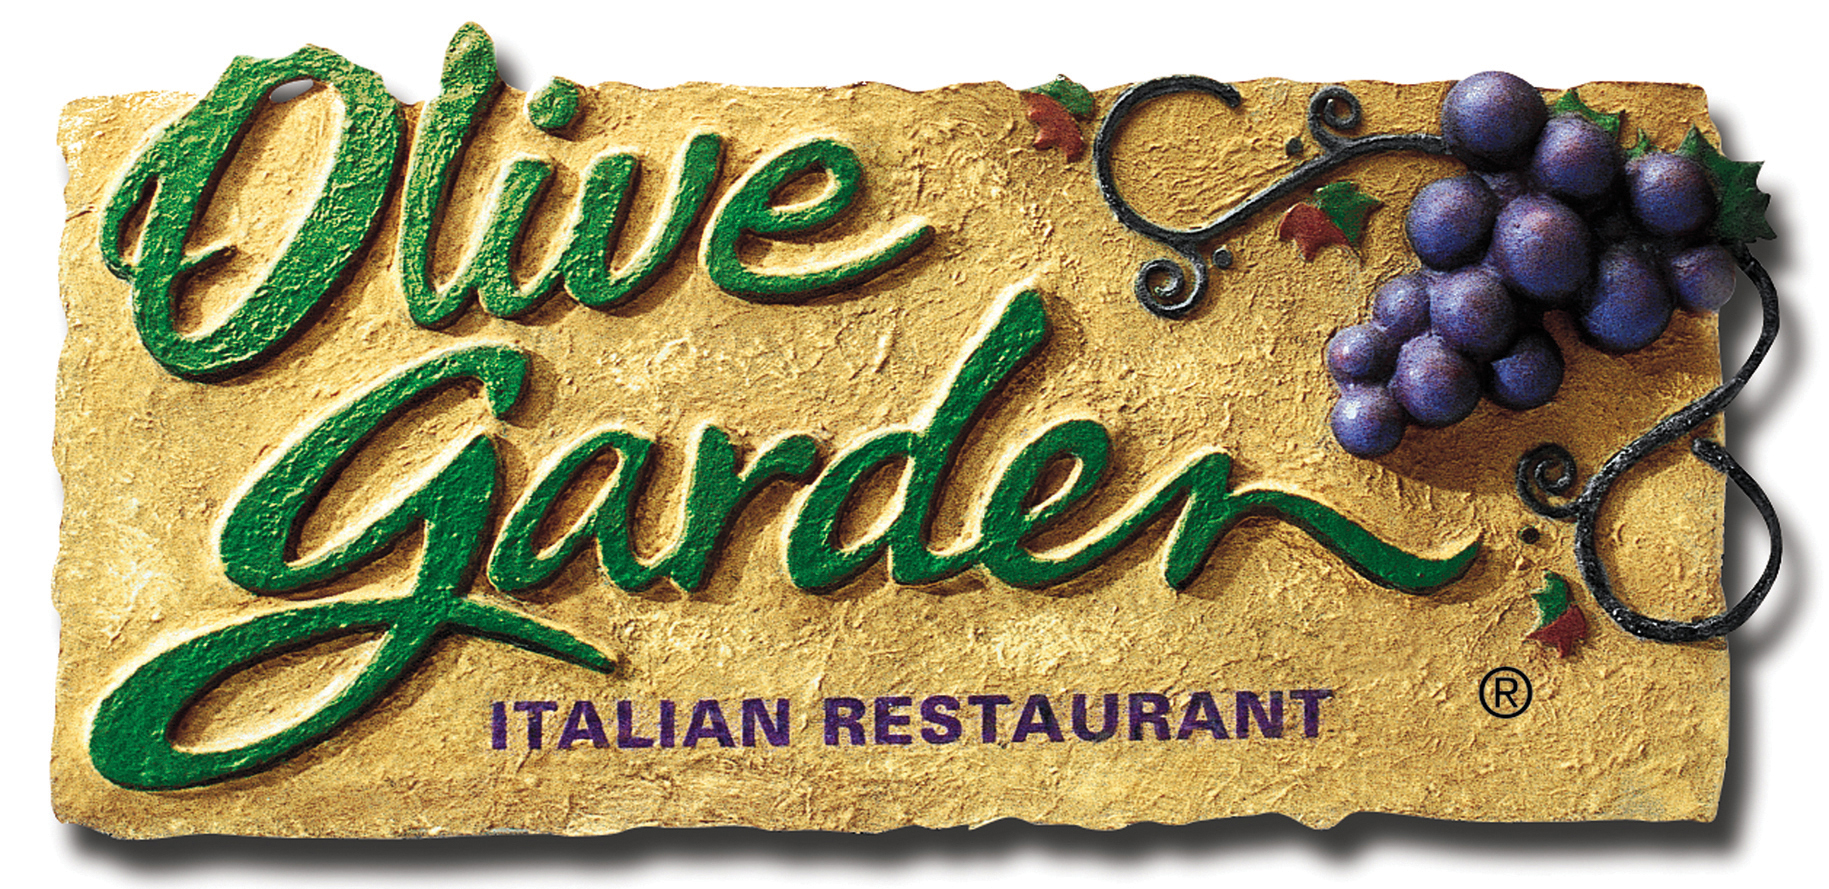 Olive garden 39 s tuscan inspired design change free wine - What time does the olive garden close ...